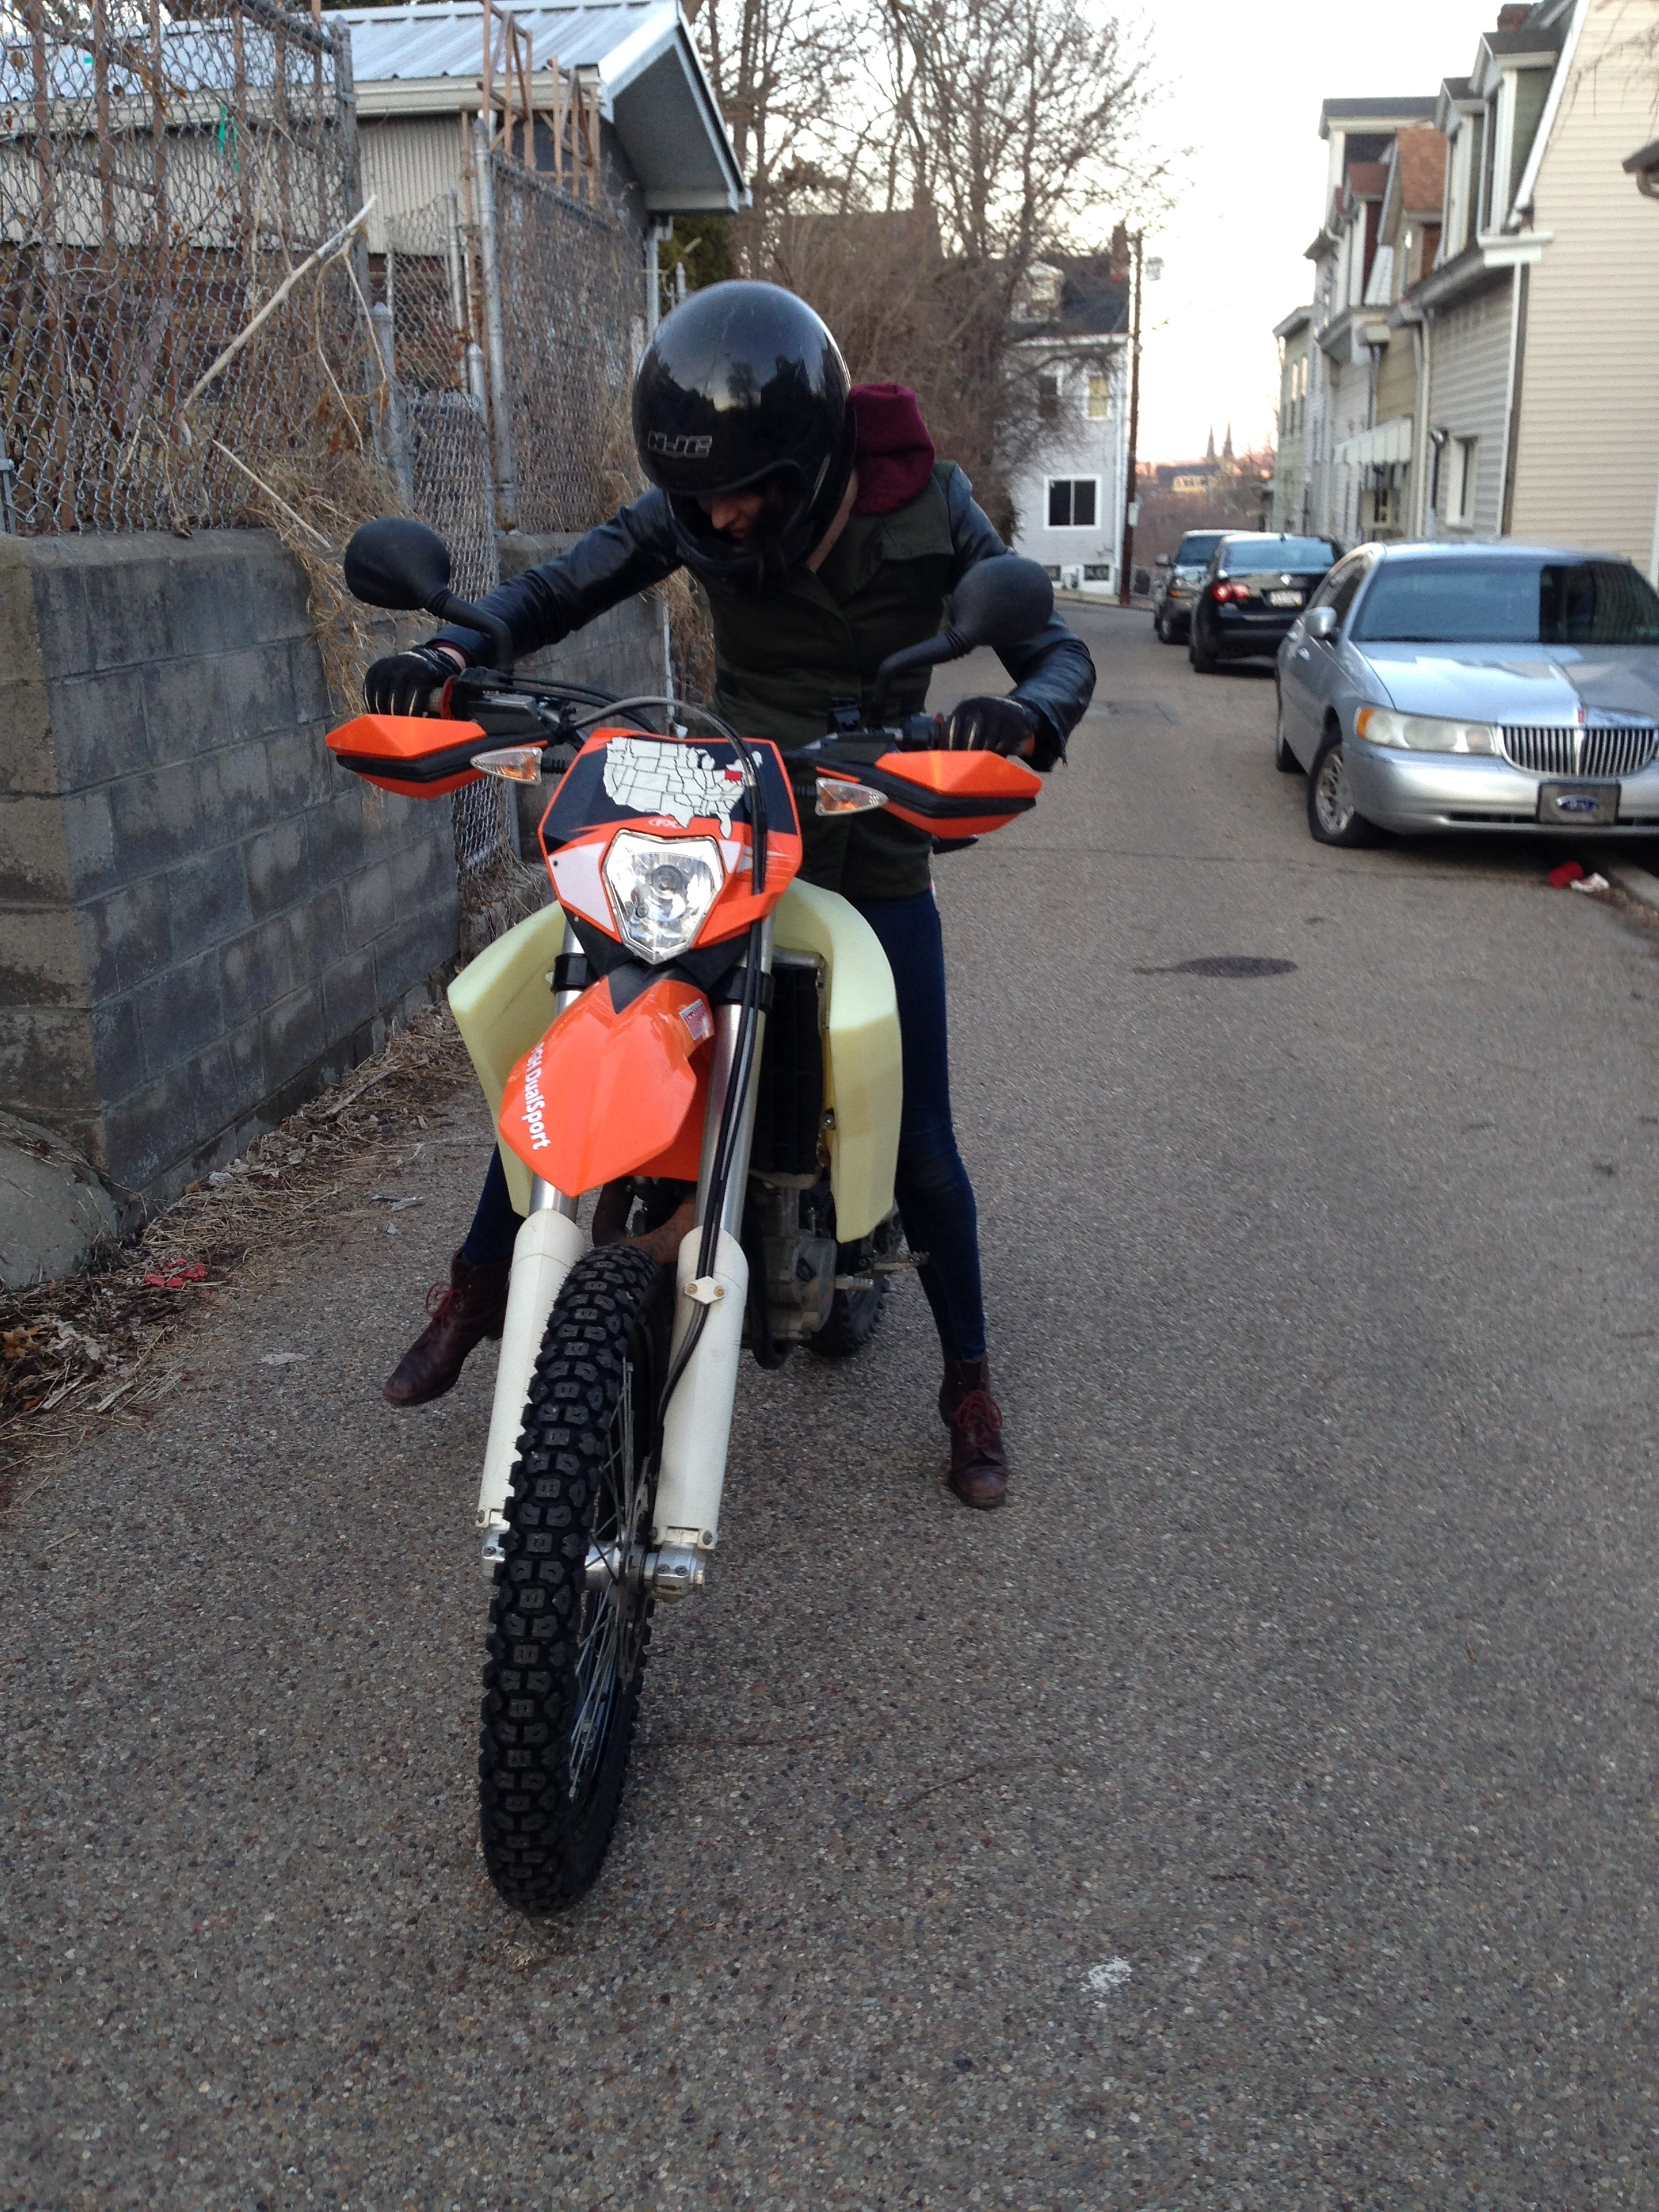 My first time learning how to ride on Adam's 2011 KTM EXC 450